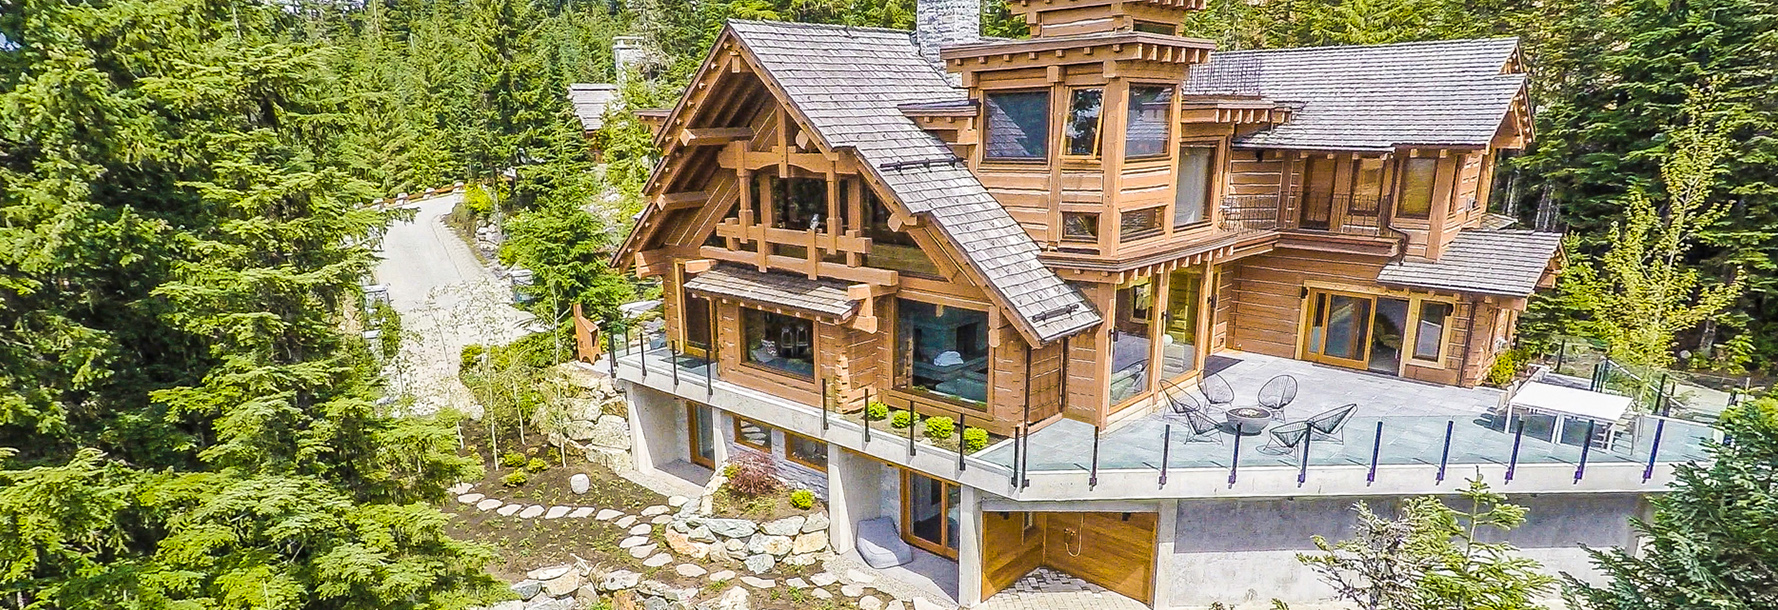 Whistler Cabin Rentals Of Home Luxury Villa Chalet Vacation Rentals Whistler